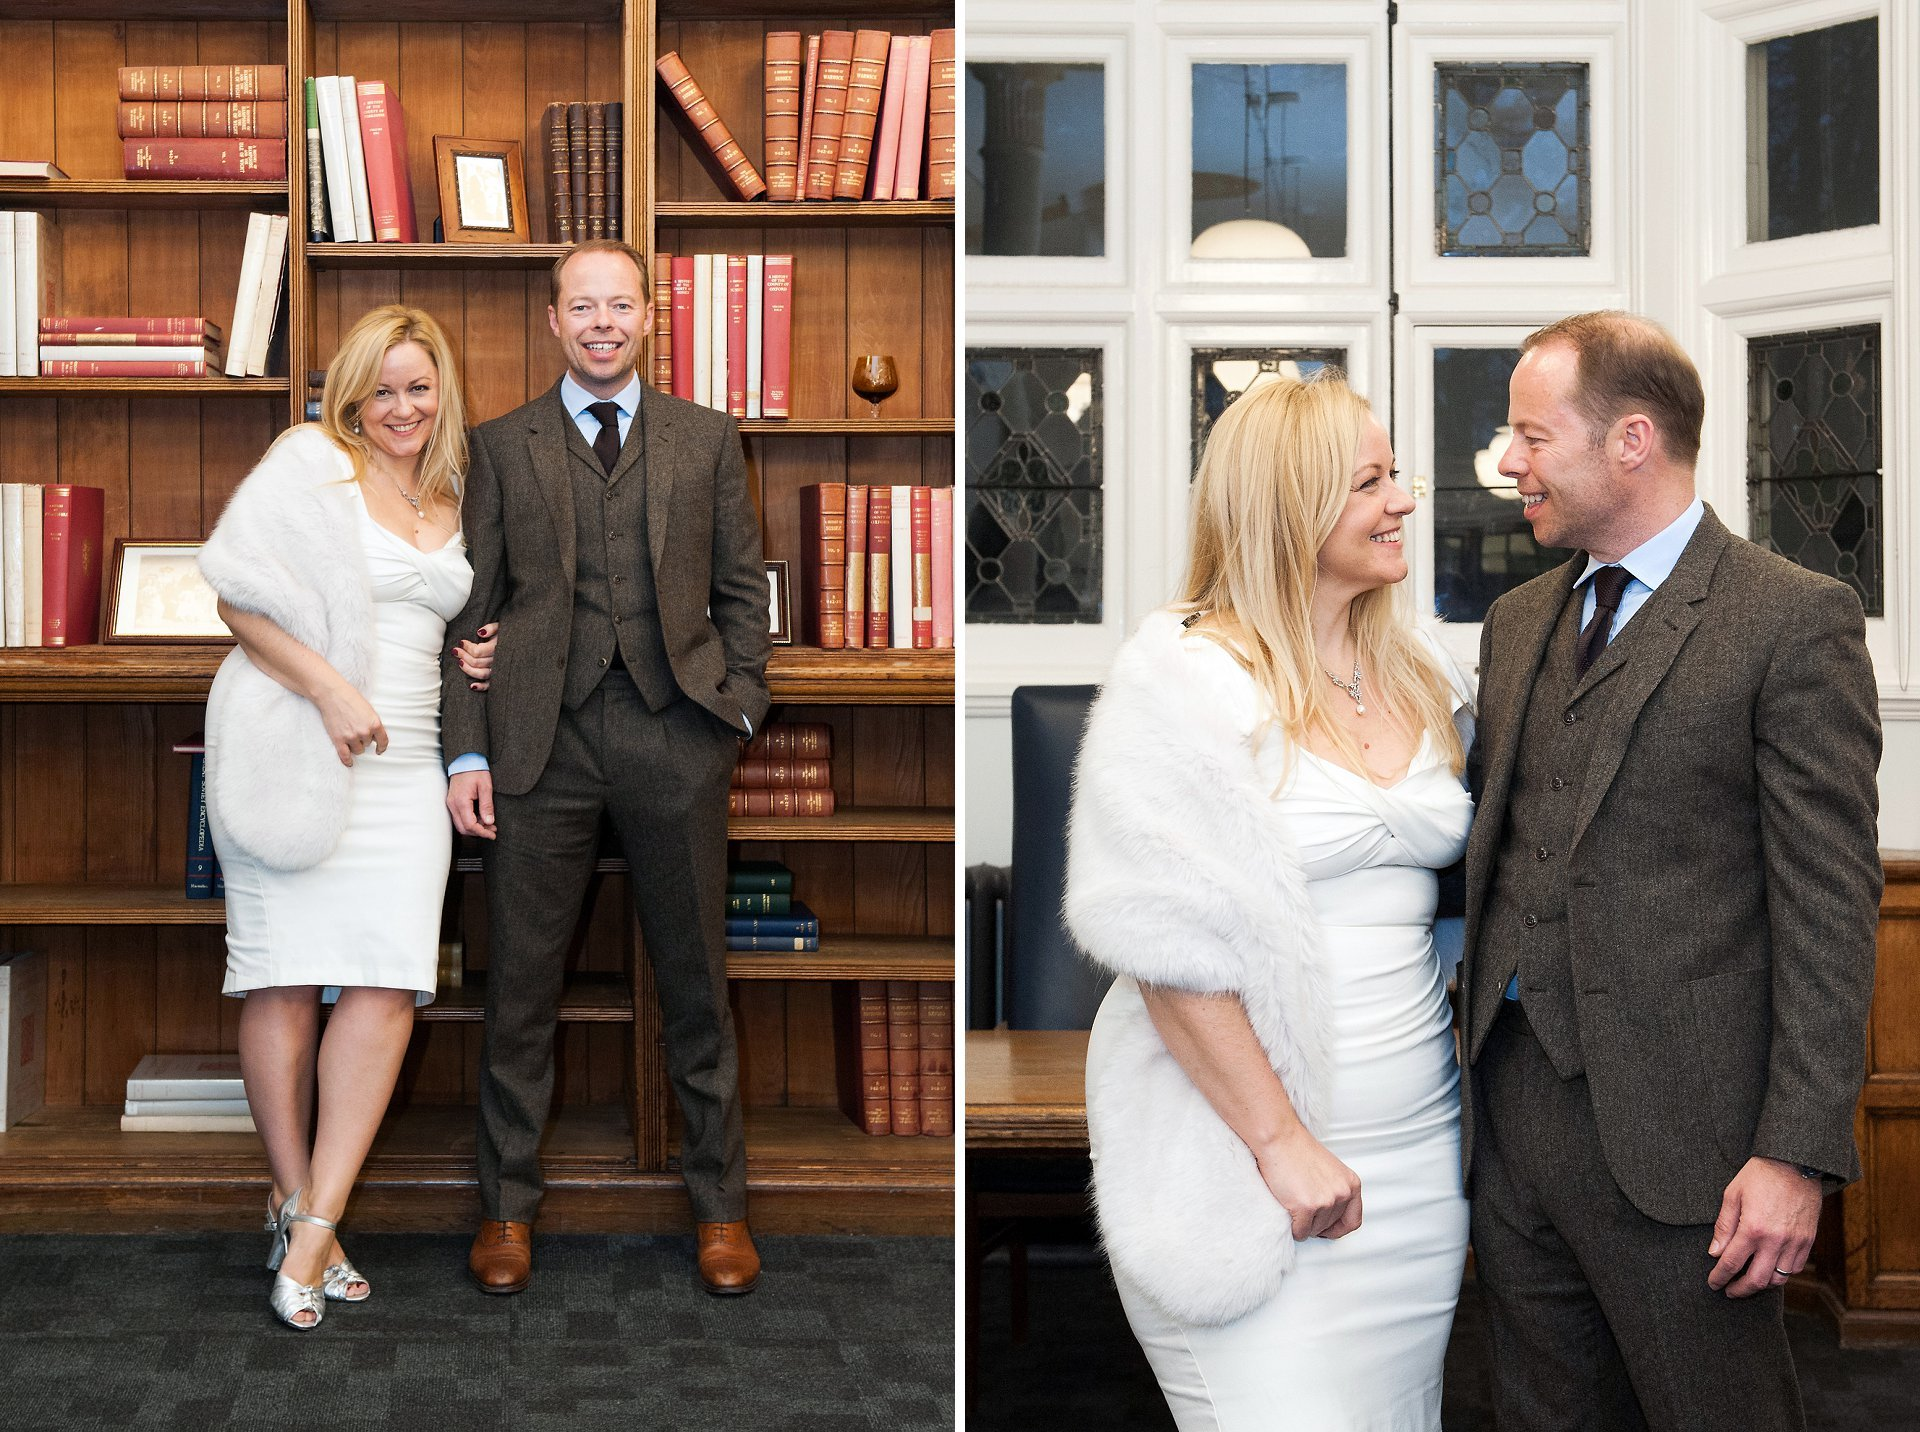 Westminster Register Office Christmas wedding photographer Emma Duggan captures natural and relaxed wedding photographs at Mayfair Library here a bride and groom after their civil marriage ceremony